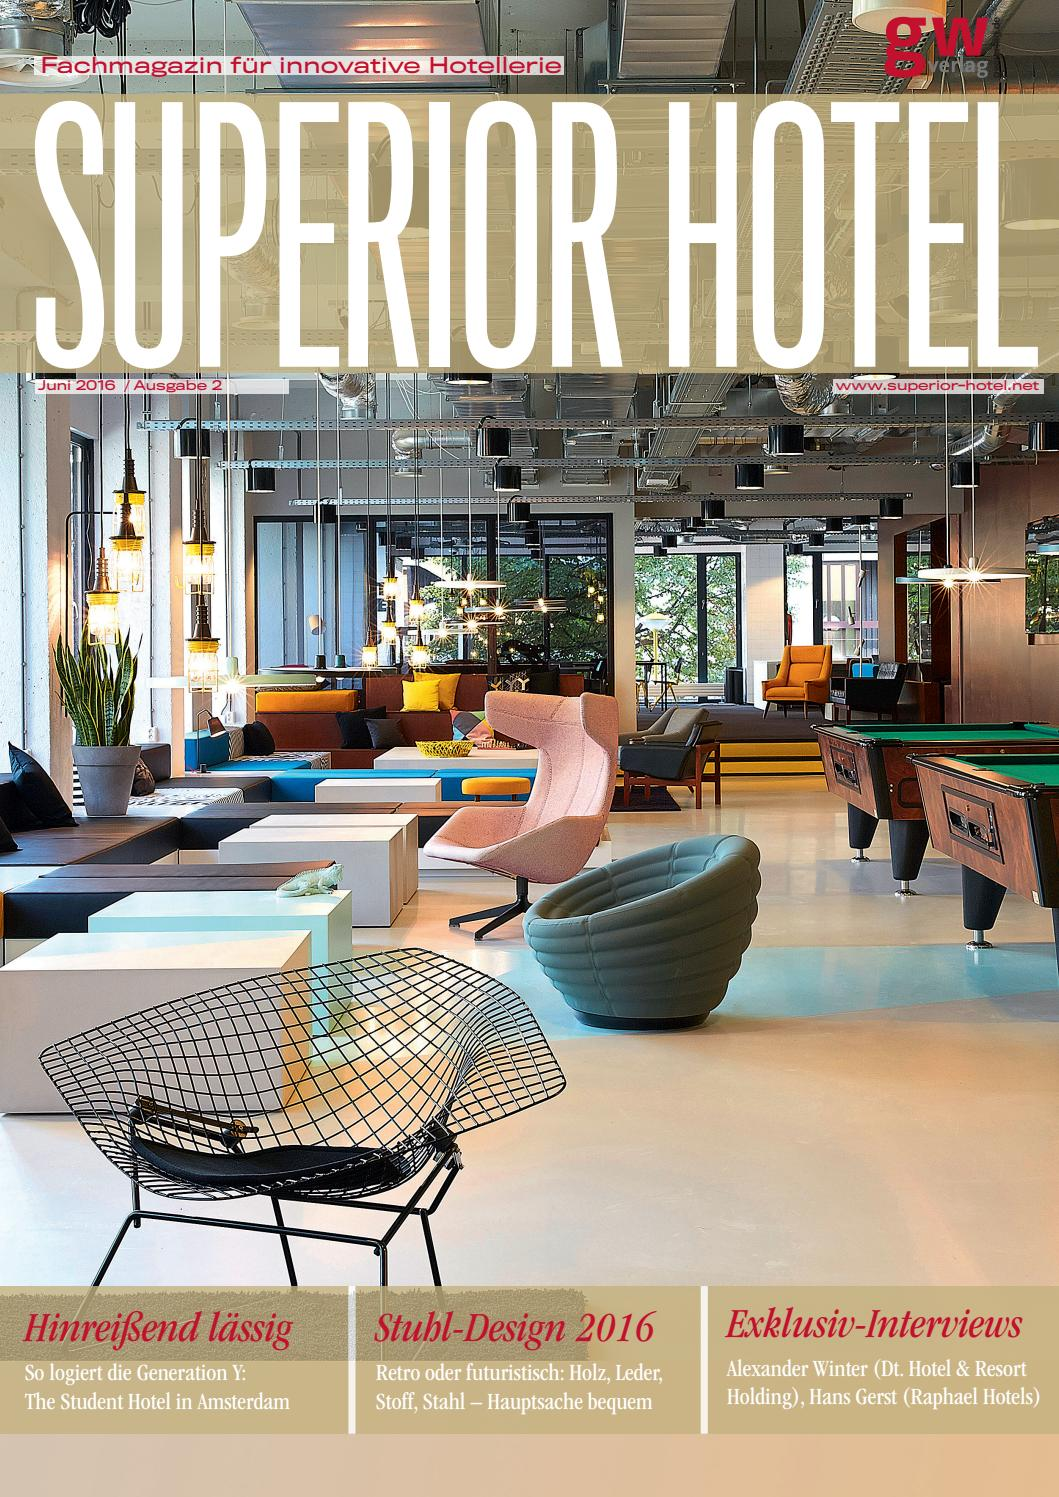 SUPERIOR HOTEL 2/16 By GW VERLAG   Issuu